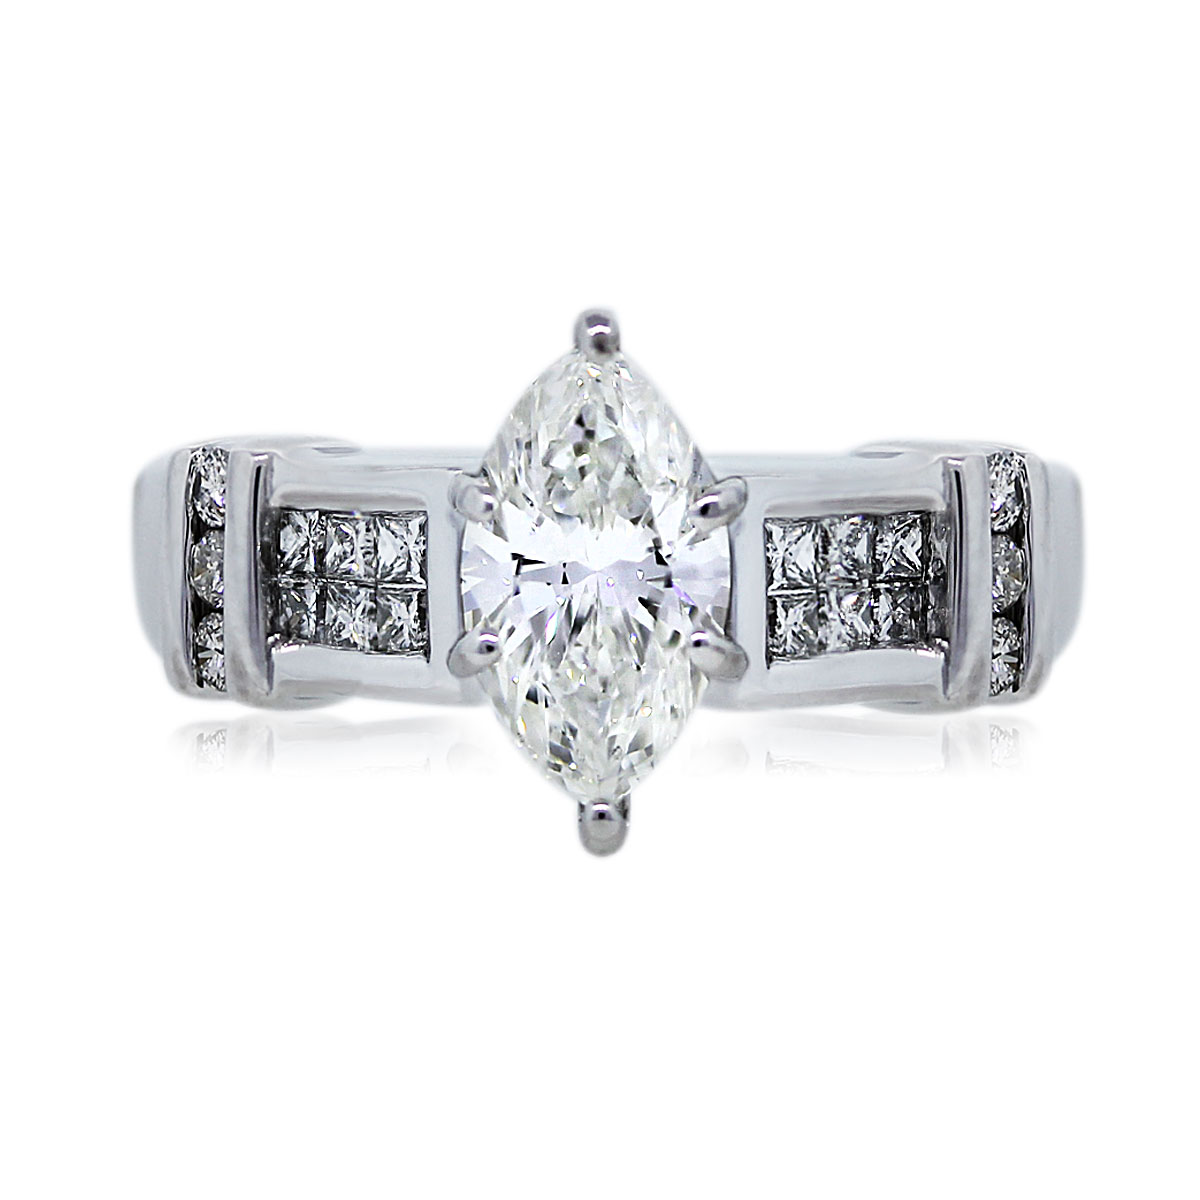 View This Stunning GIA Certified 1.11ct Marquise Cut Engagement Ring!